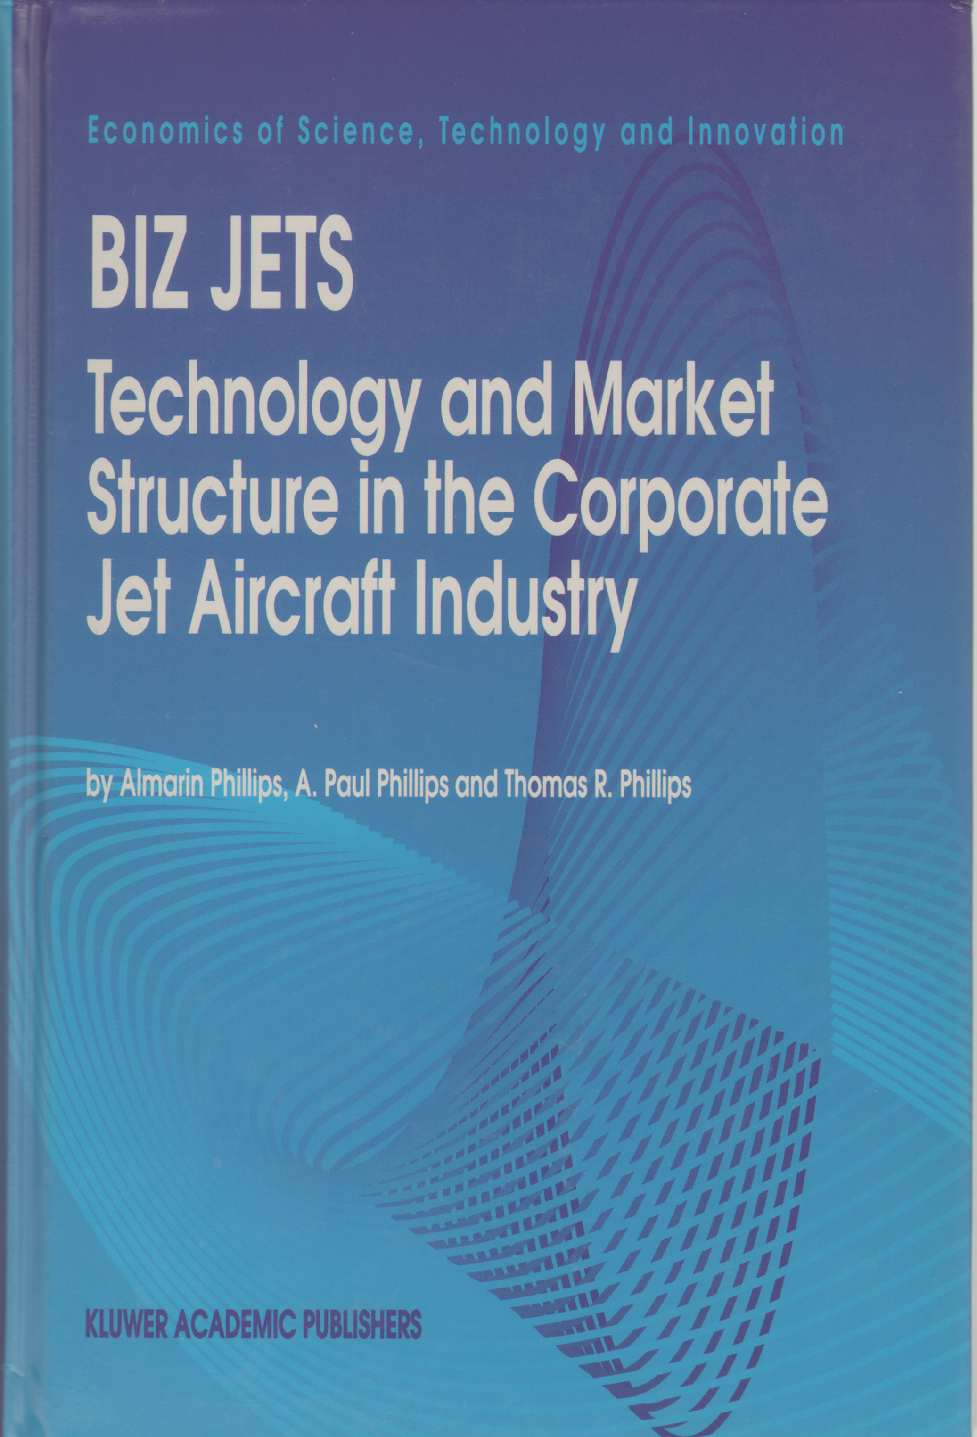 BIZ JETS Technology and Market Structure in the Corporate Jet Aircraft Industry, Phillips, Almarin & Thomas R. Phillips & A. Paul Phillips